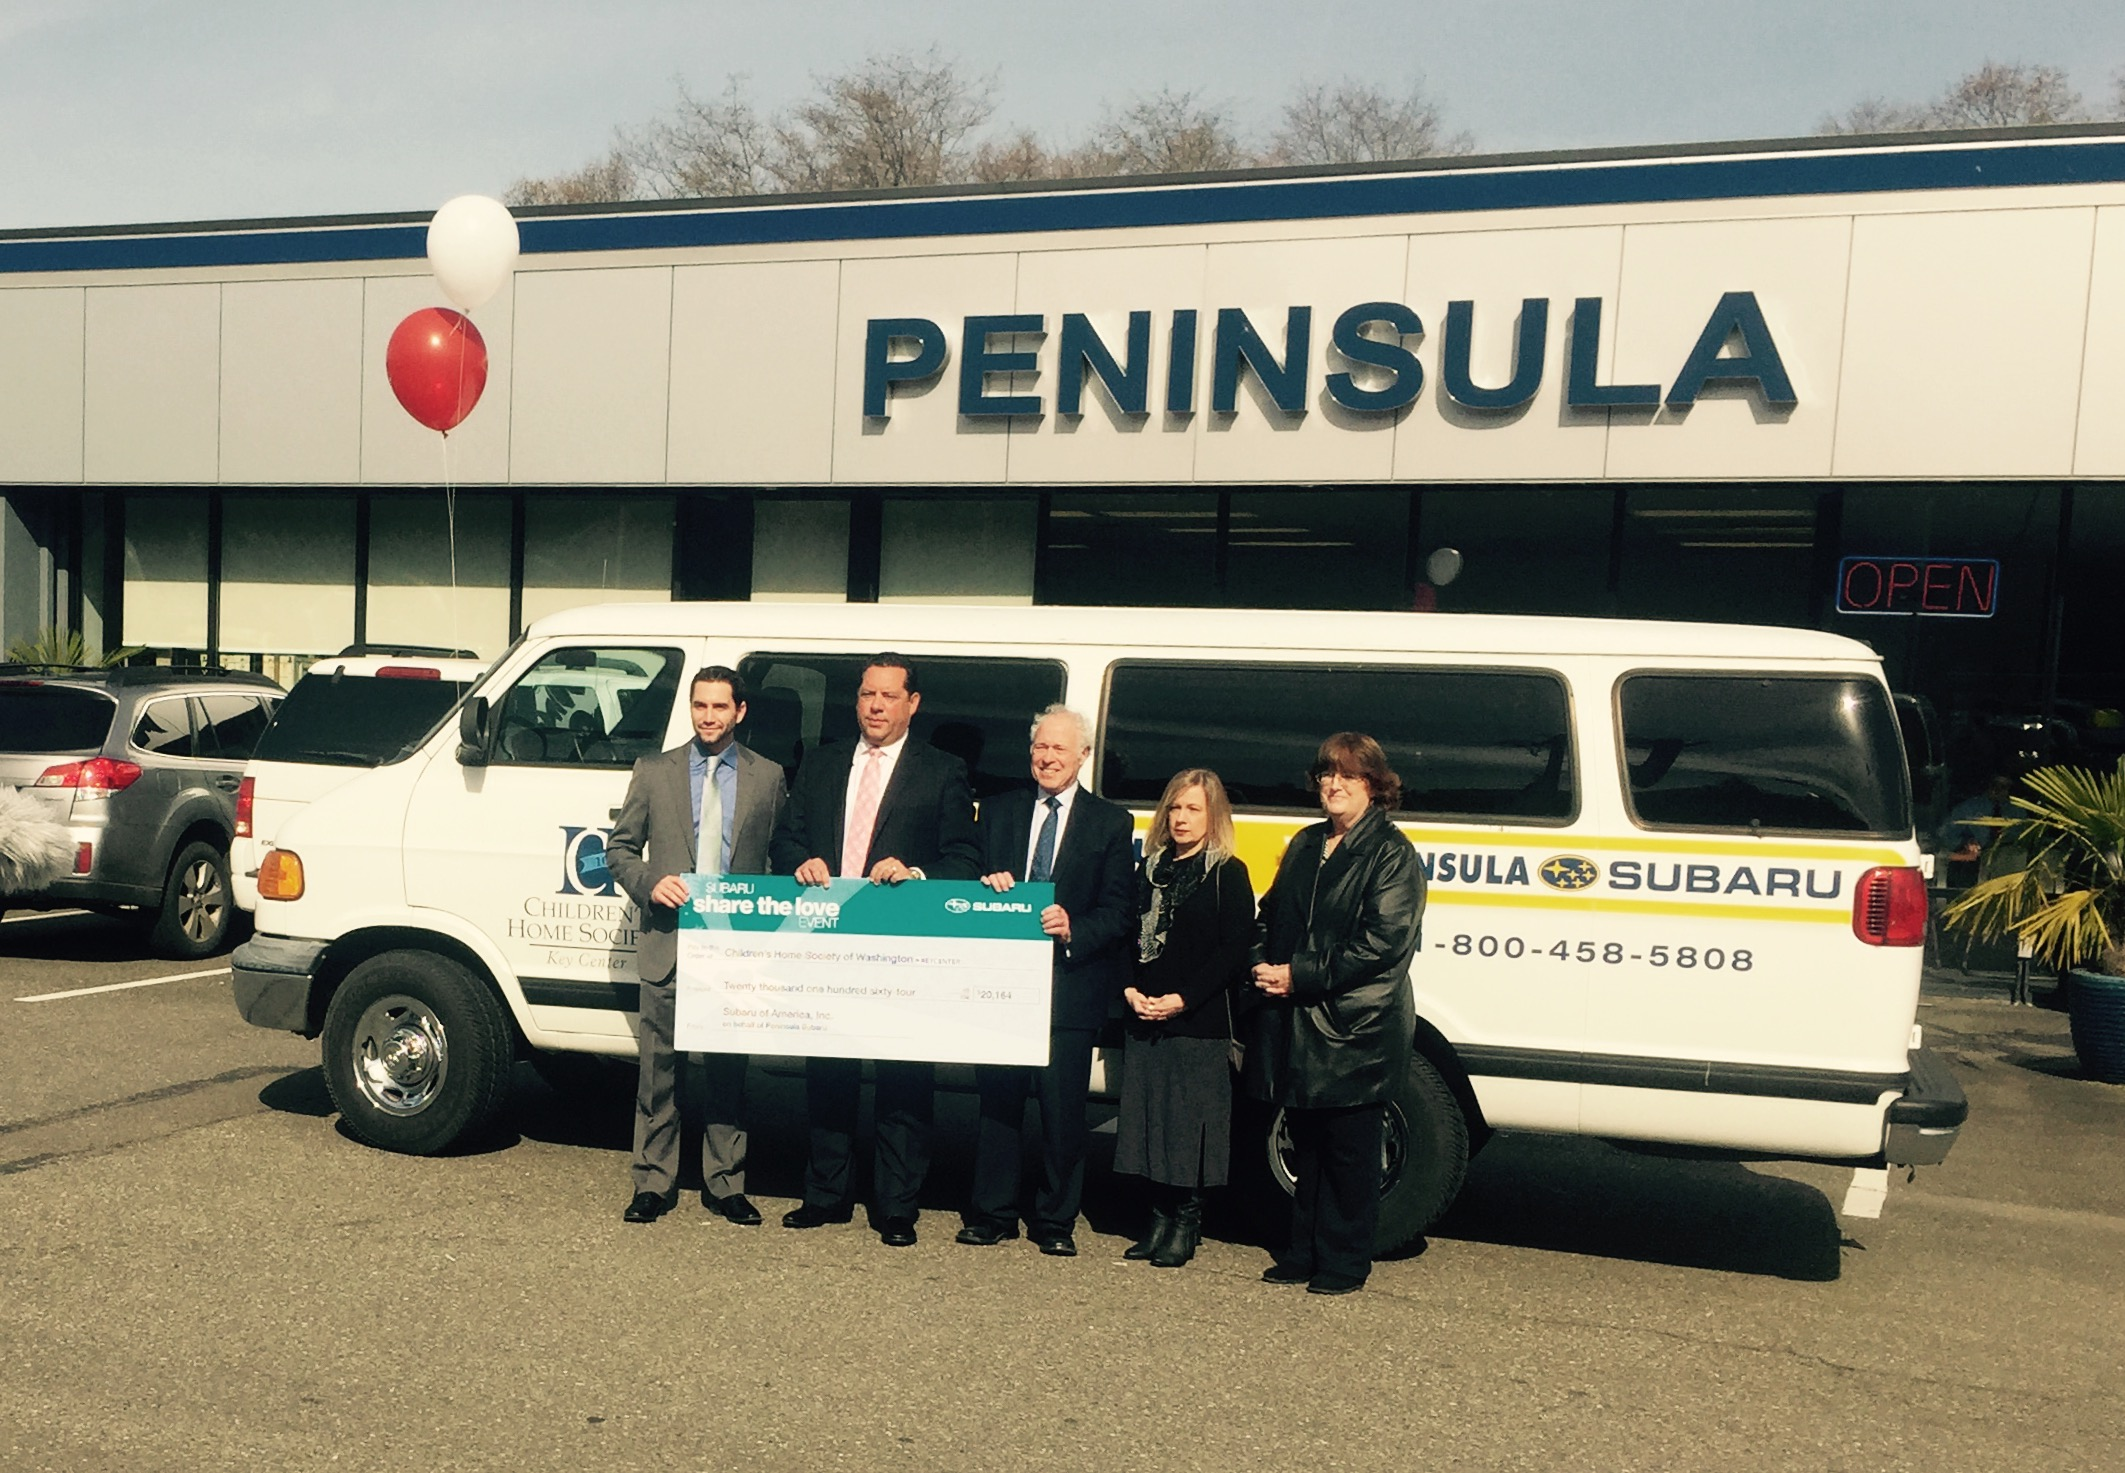 John Dionas, second from left, presents a check from the Peninsula Auto Group to Key Peninsula Family Resource Center staff.